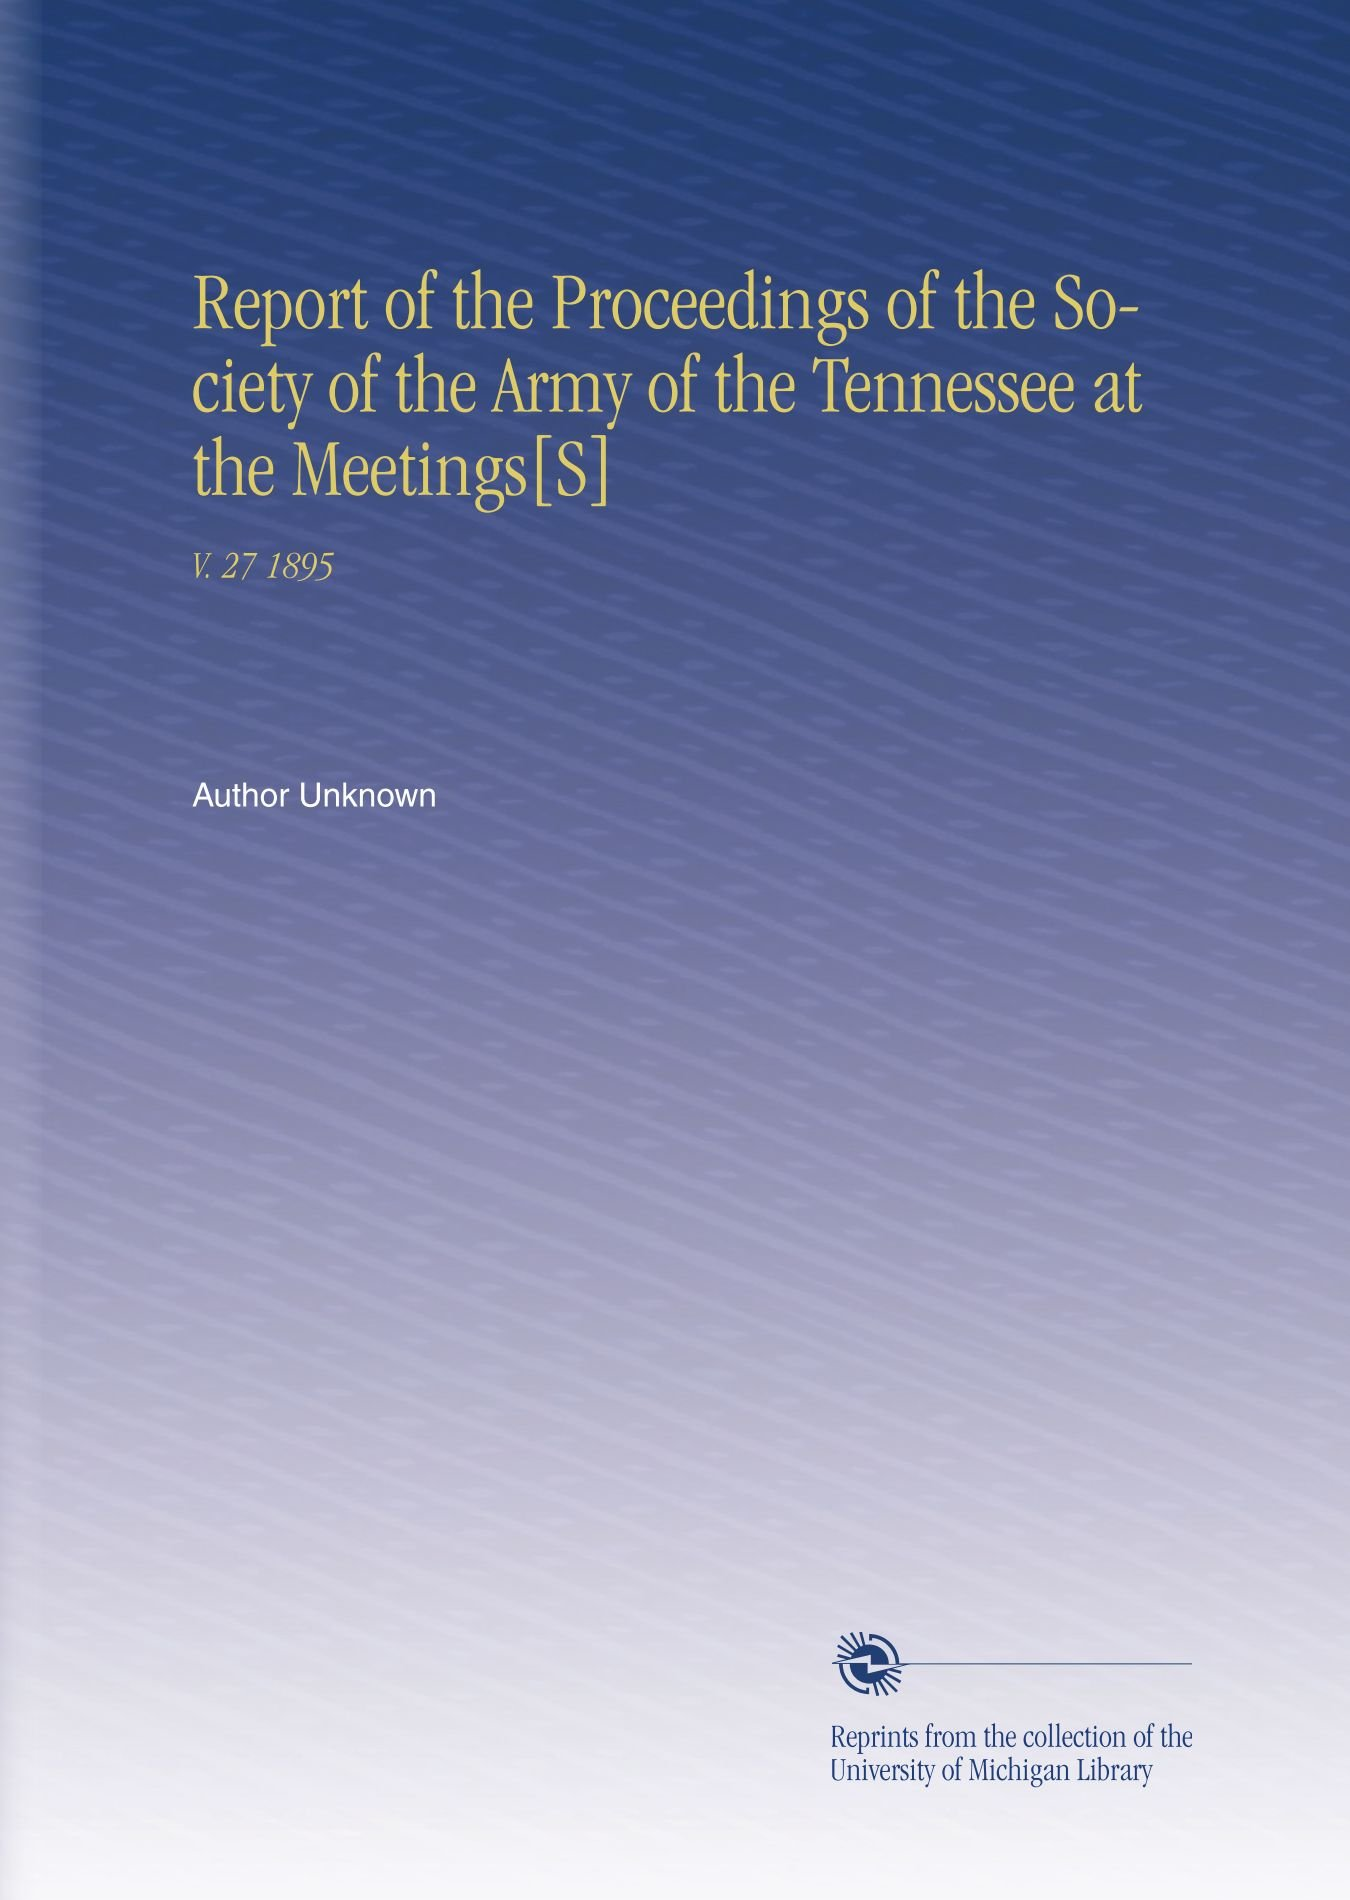 Download Report of the Proceedings of the Society of the Army of the Tennessee at the Meetings[S]: V. 27 1895 pdf epub